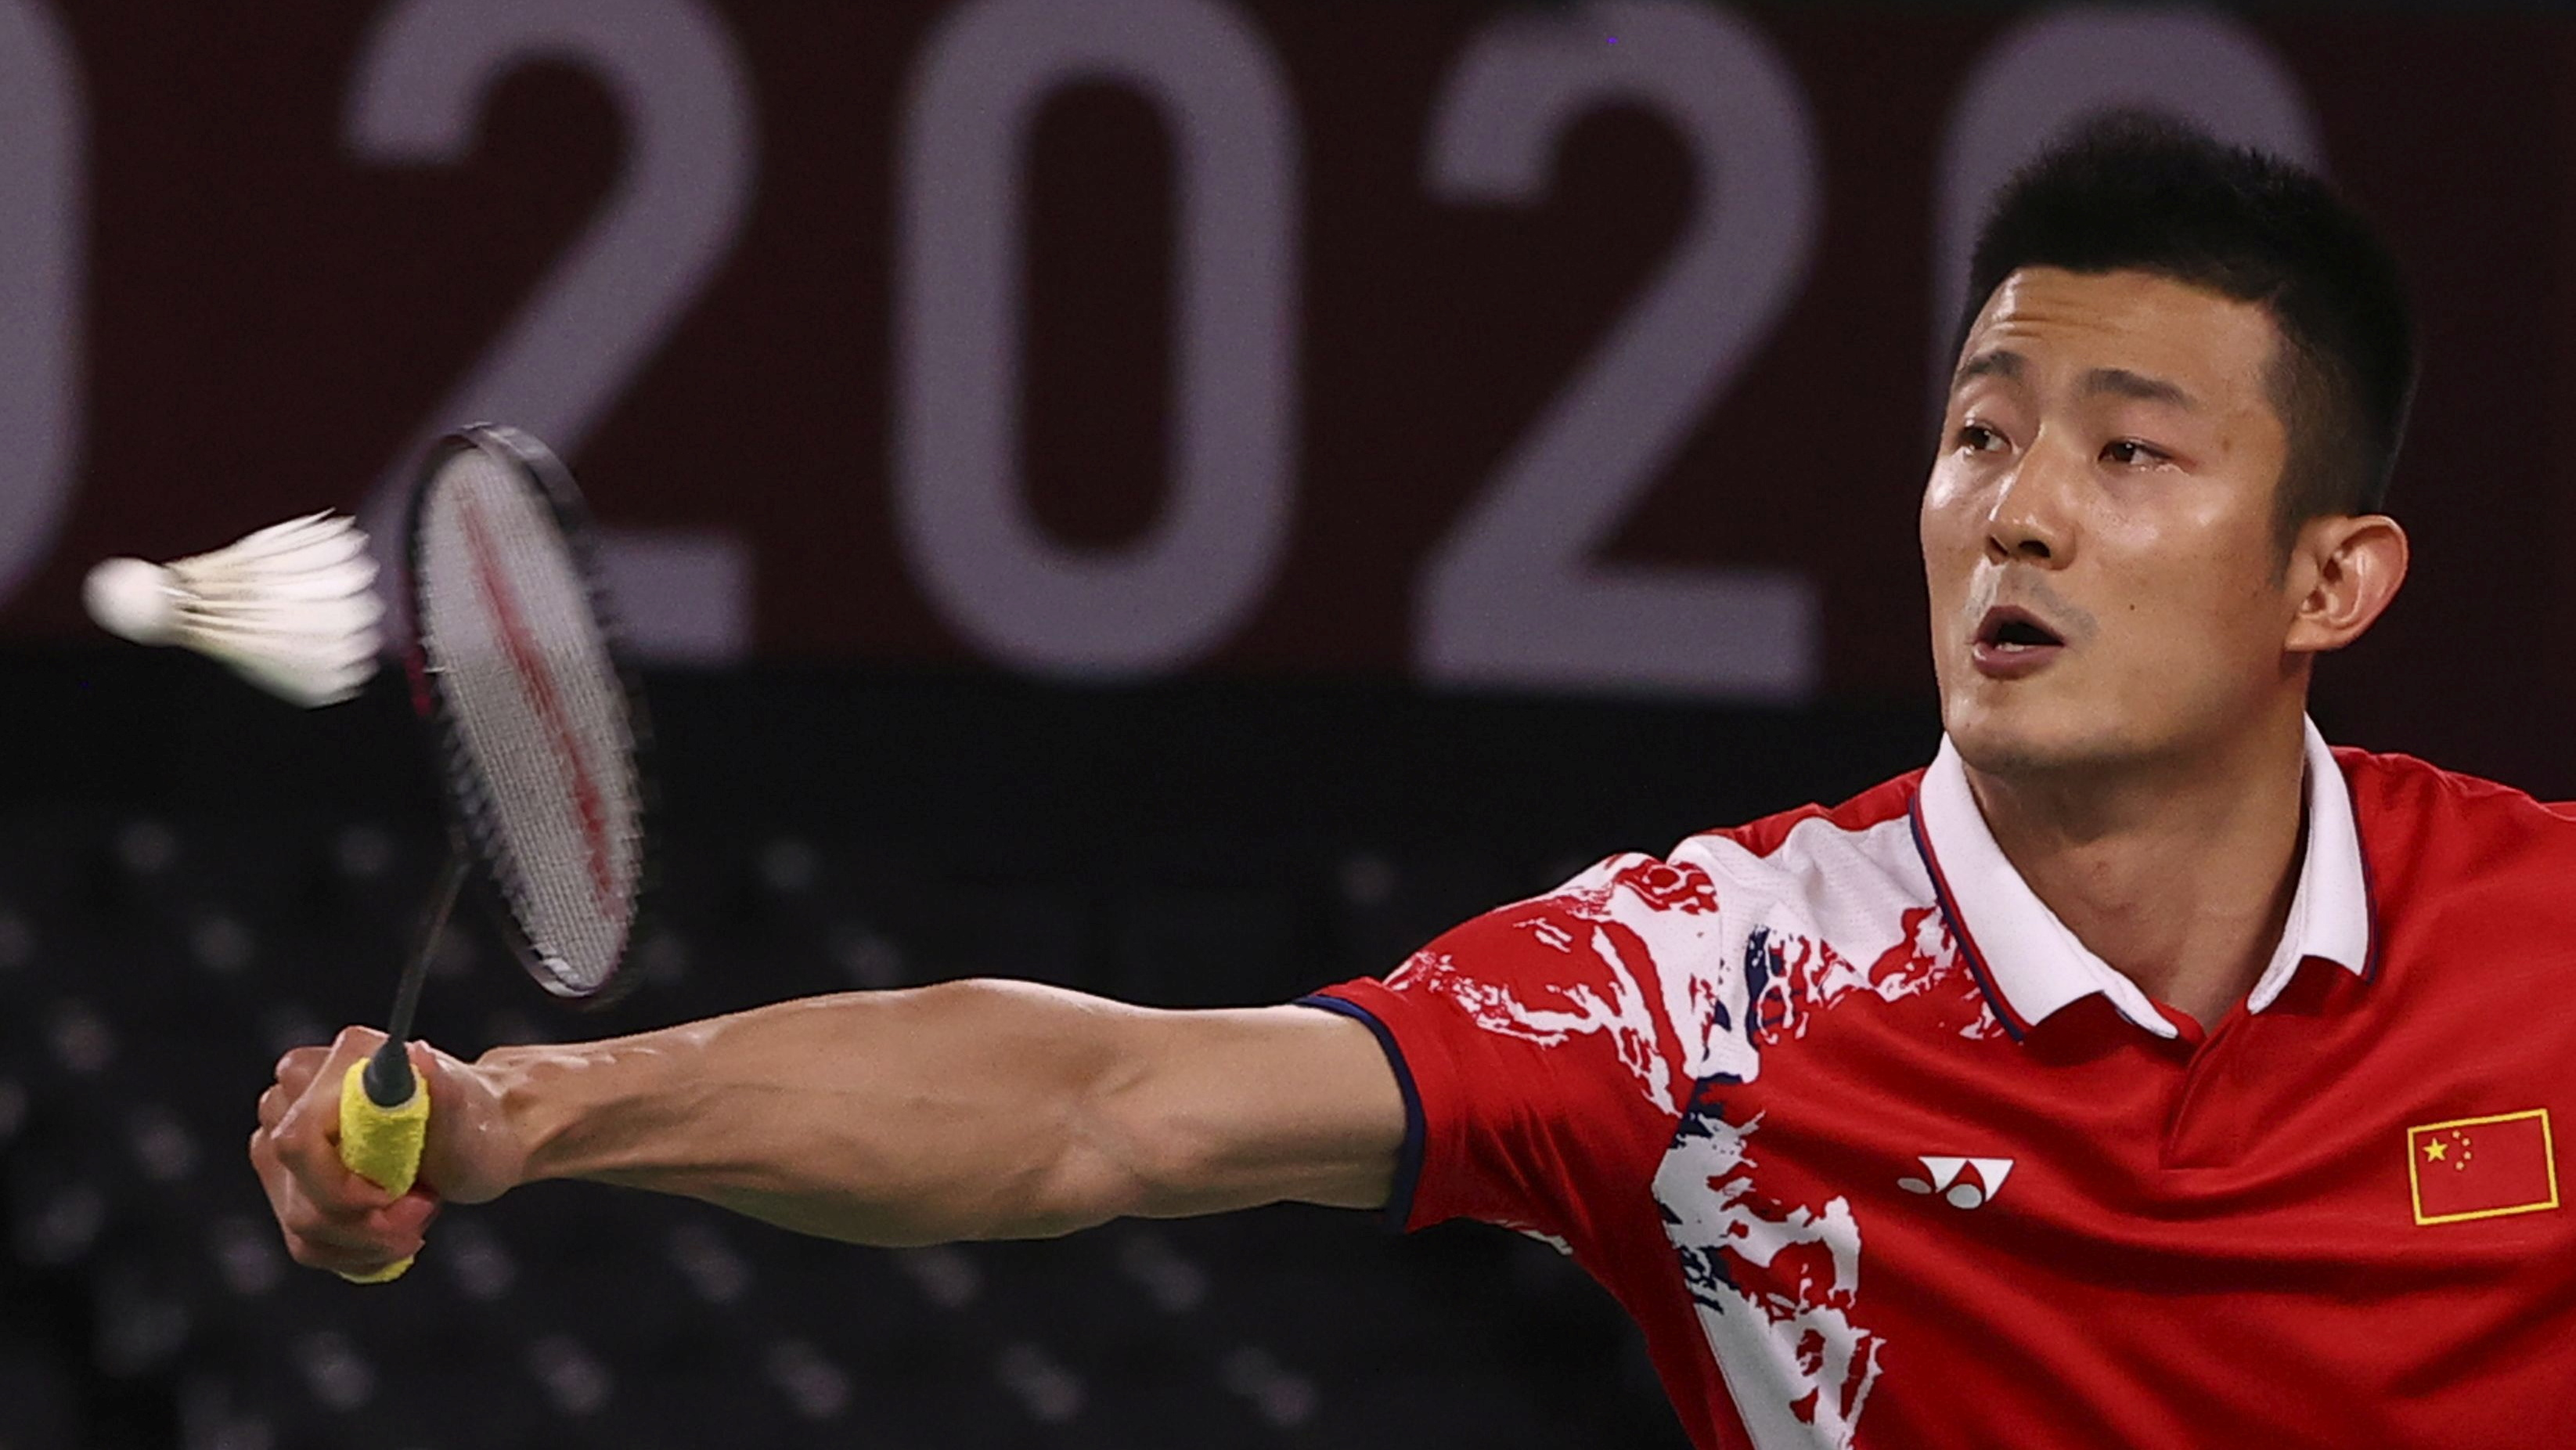 Tokyo 2020 Olympics - Badminton - Men's Singles - Quarterfinal - MFS - Musashino Forest Sport Plaza, Tokyo, Japan – July 31, 2021. Chen Long of China in action during the match against Chou Tien-Chen of Taiwan. REUTERS/Leonhard Foeger